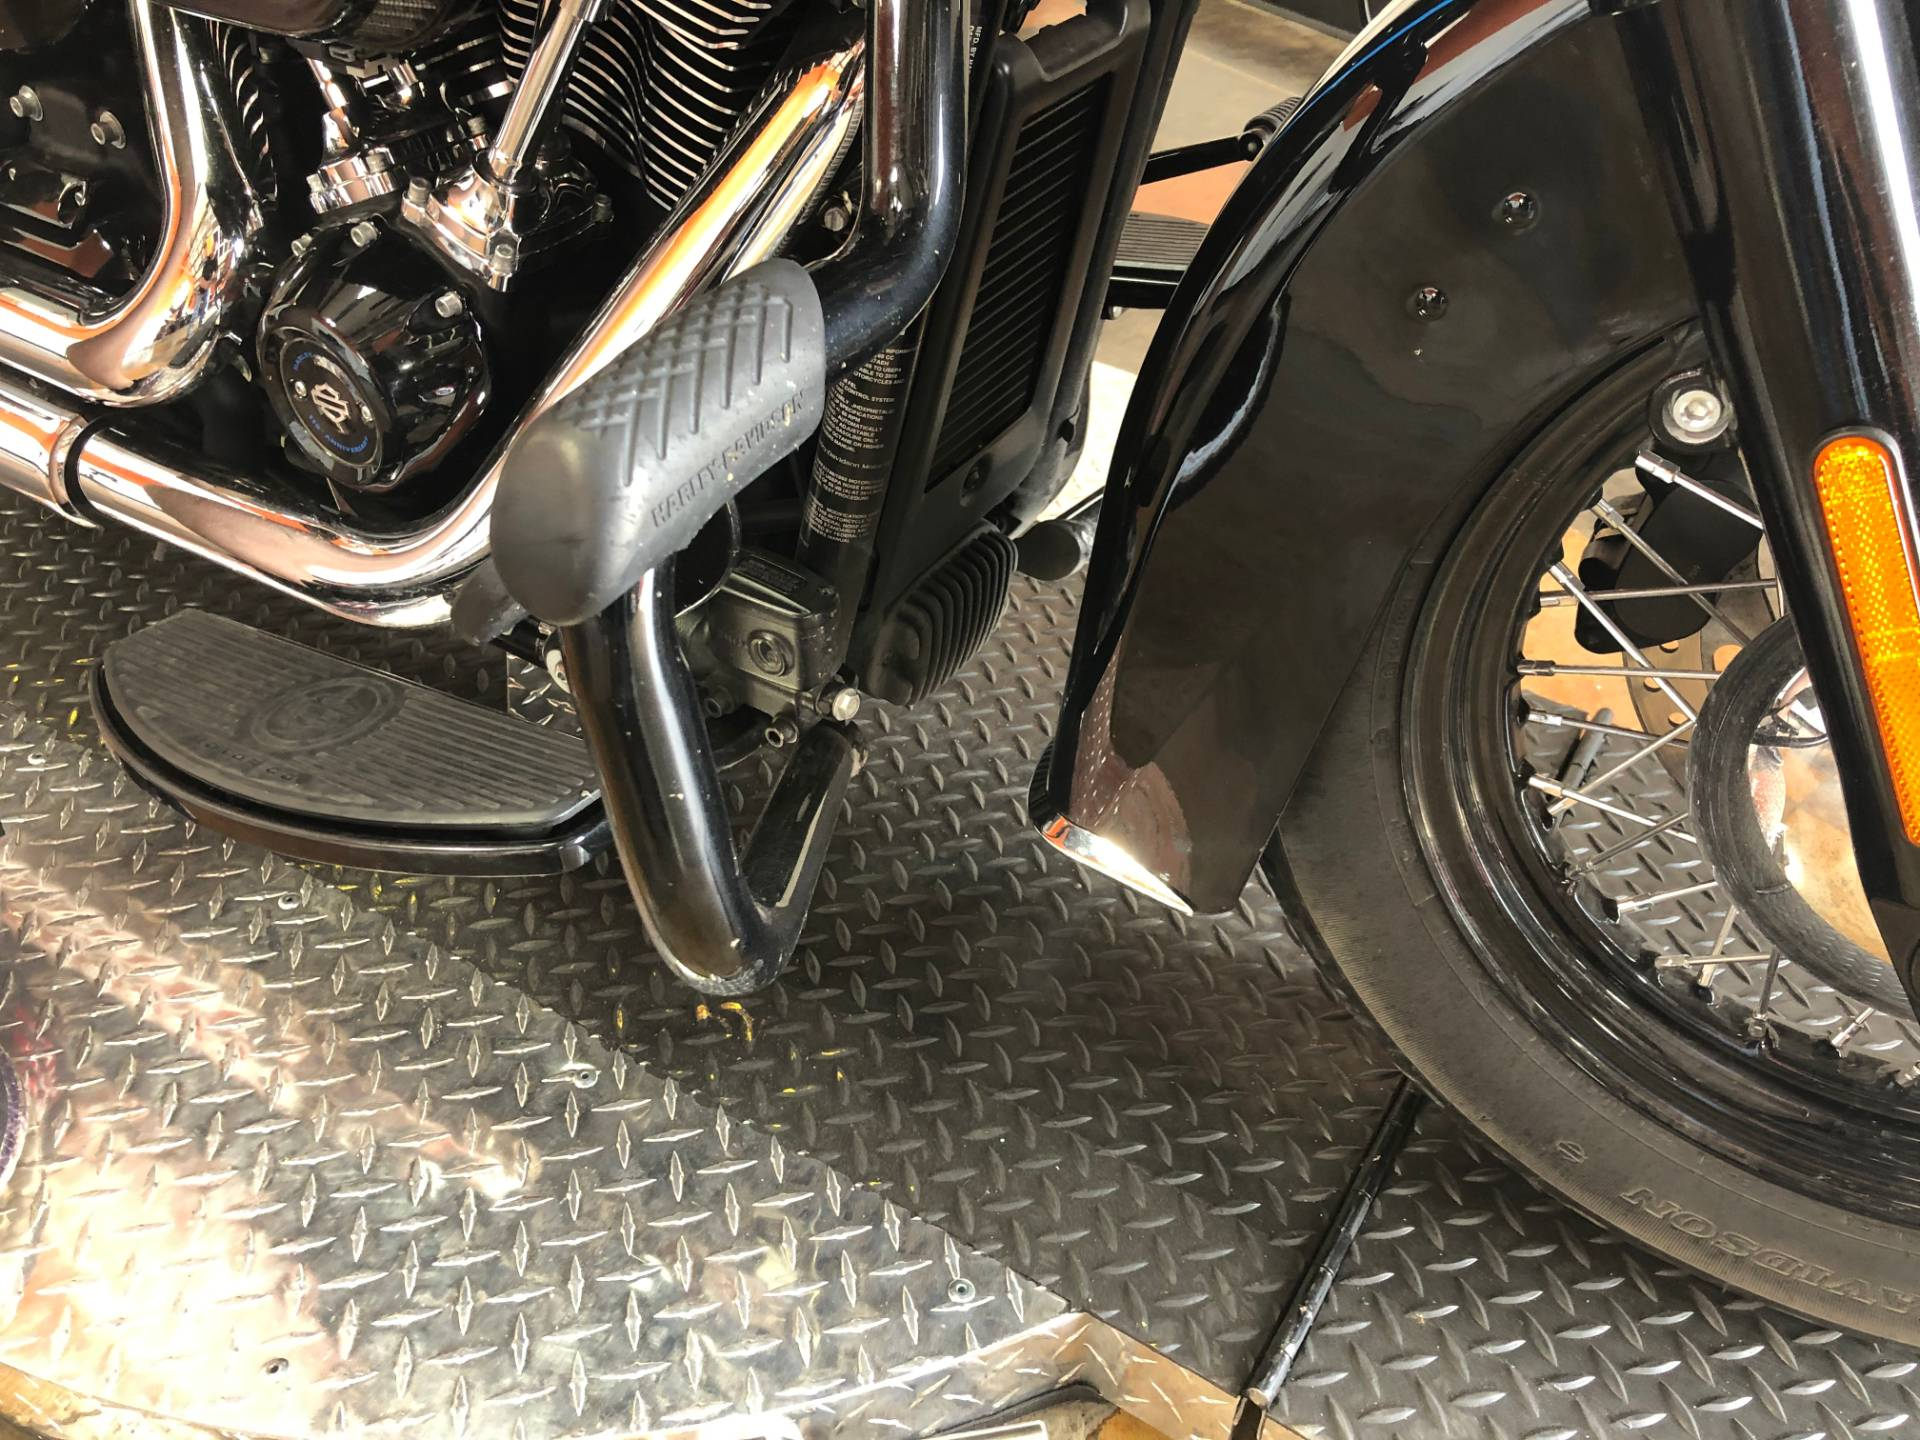 2018 Harley-Davidson Heritage Classic 114 in Marion, Illinois - Photo 10